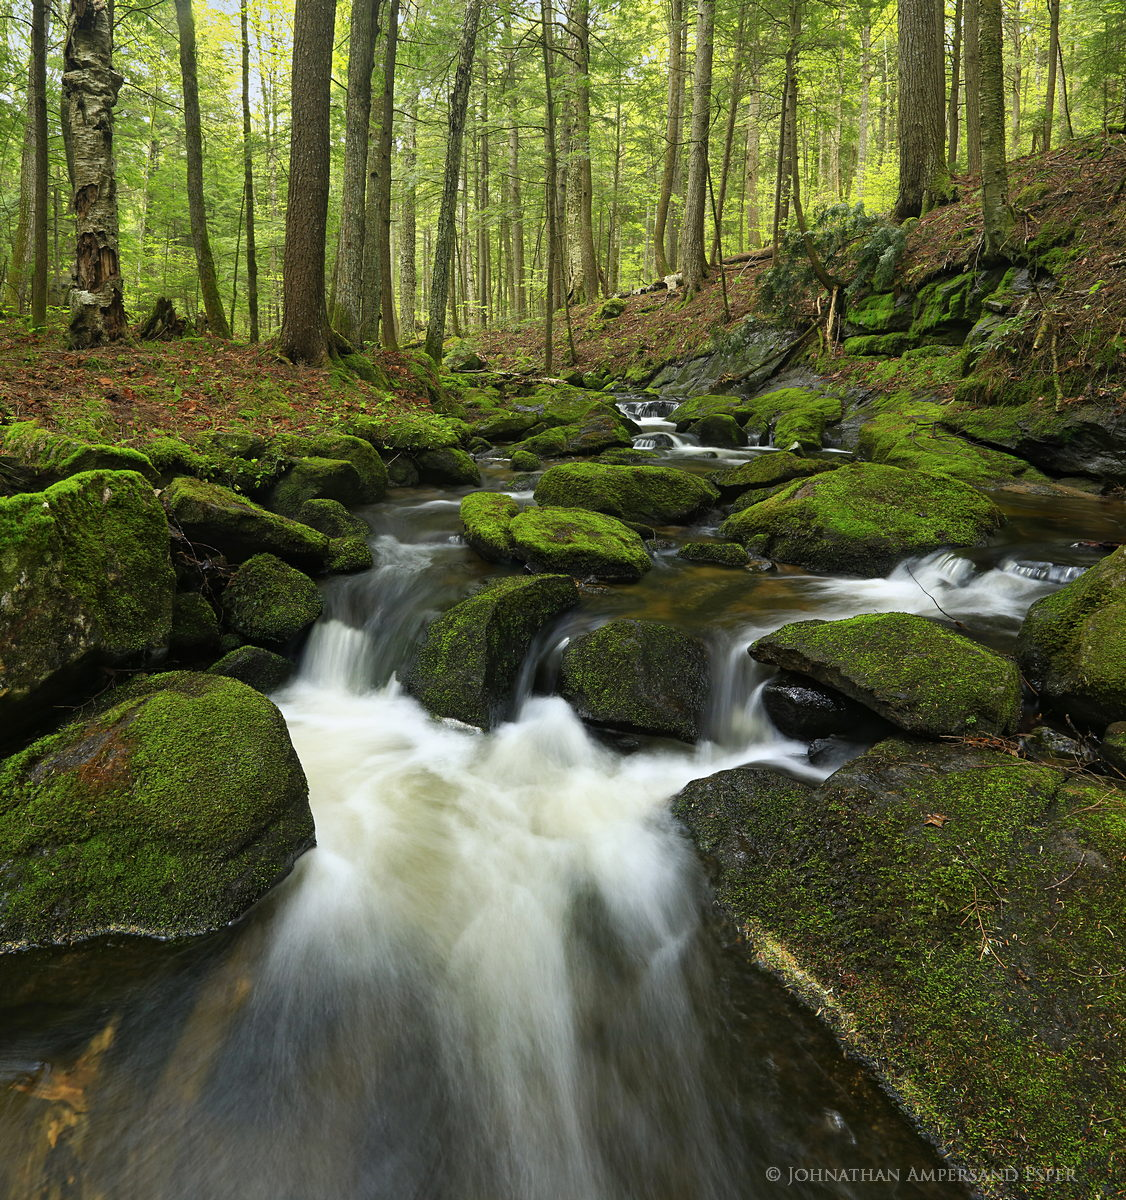 Spectacle Pond Outlet,stream,Spectacle Pond,Schroon Lake,region,mossy,rocks,spring,2014,Johnathan Esper, photo